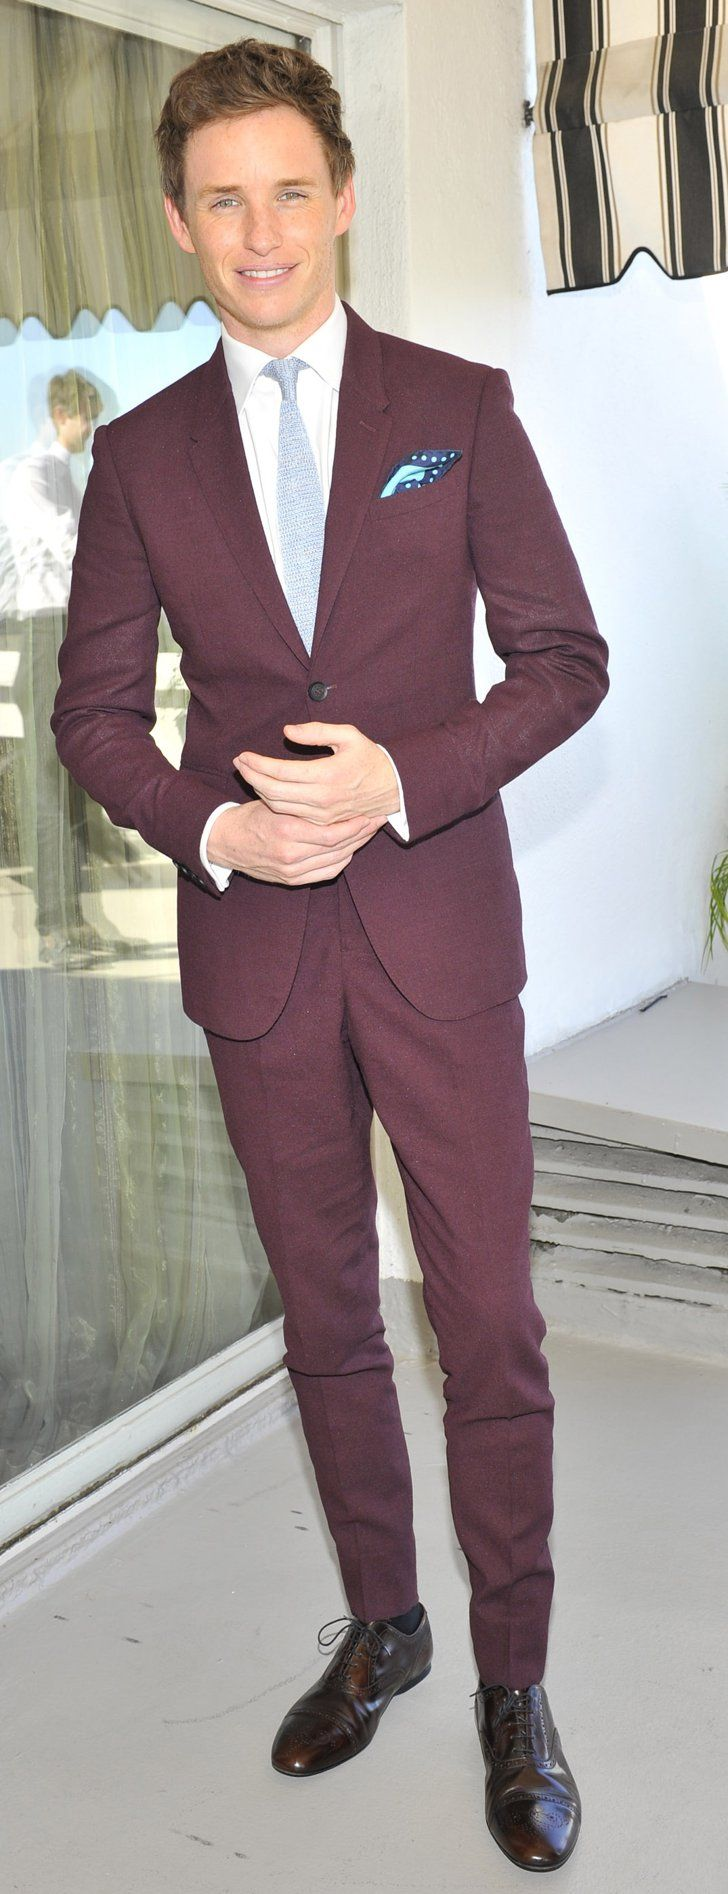 It's Official: No One Wears a Suit Better Than Eddie Redmayne